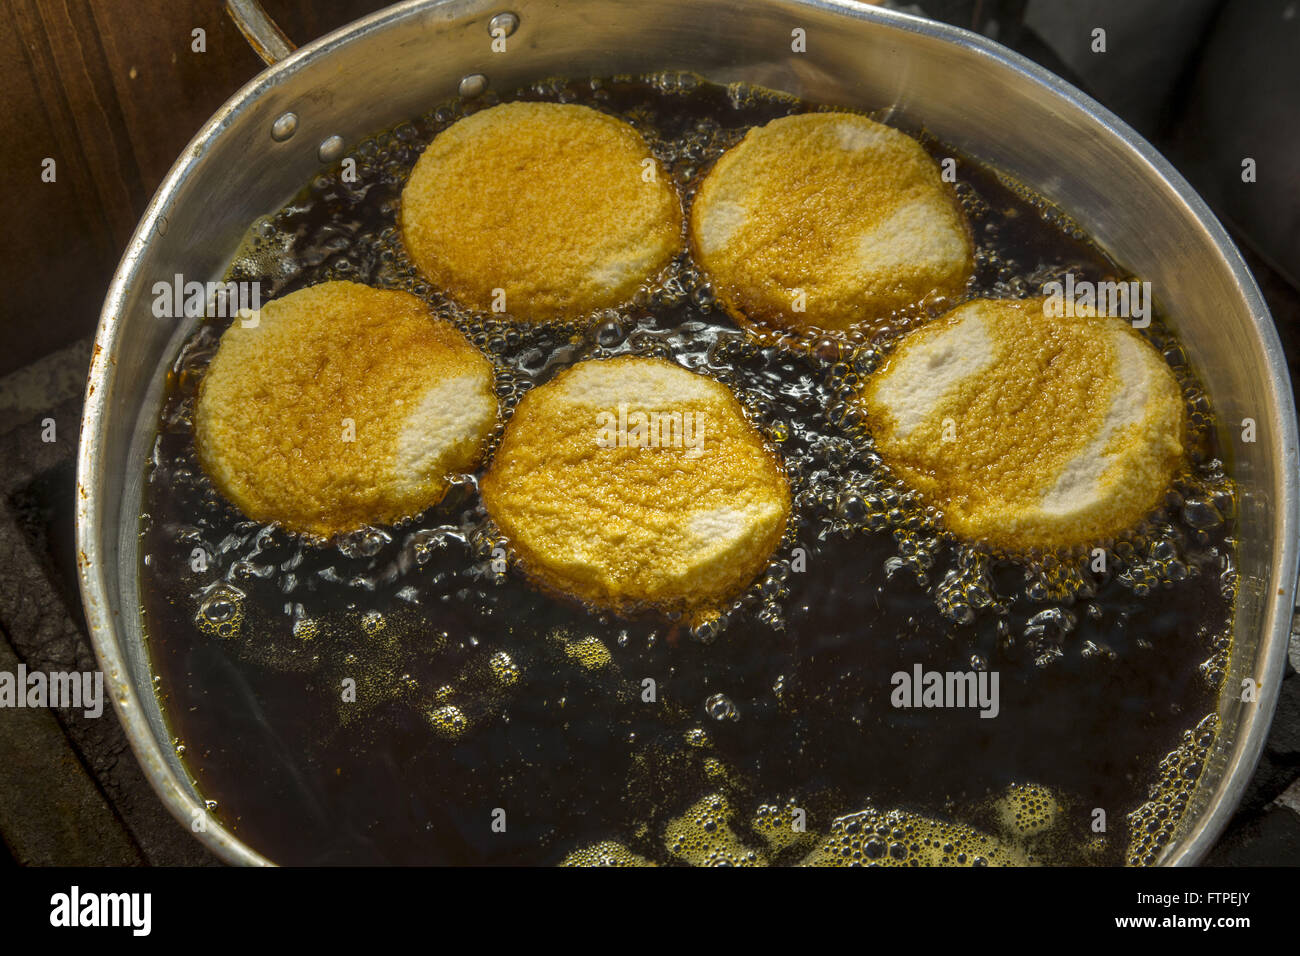 Details acaraje being fried - photographic sequence 4 - Stock Image